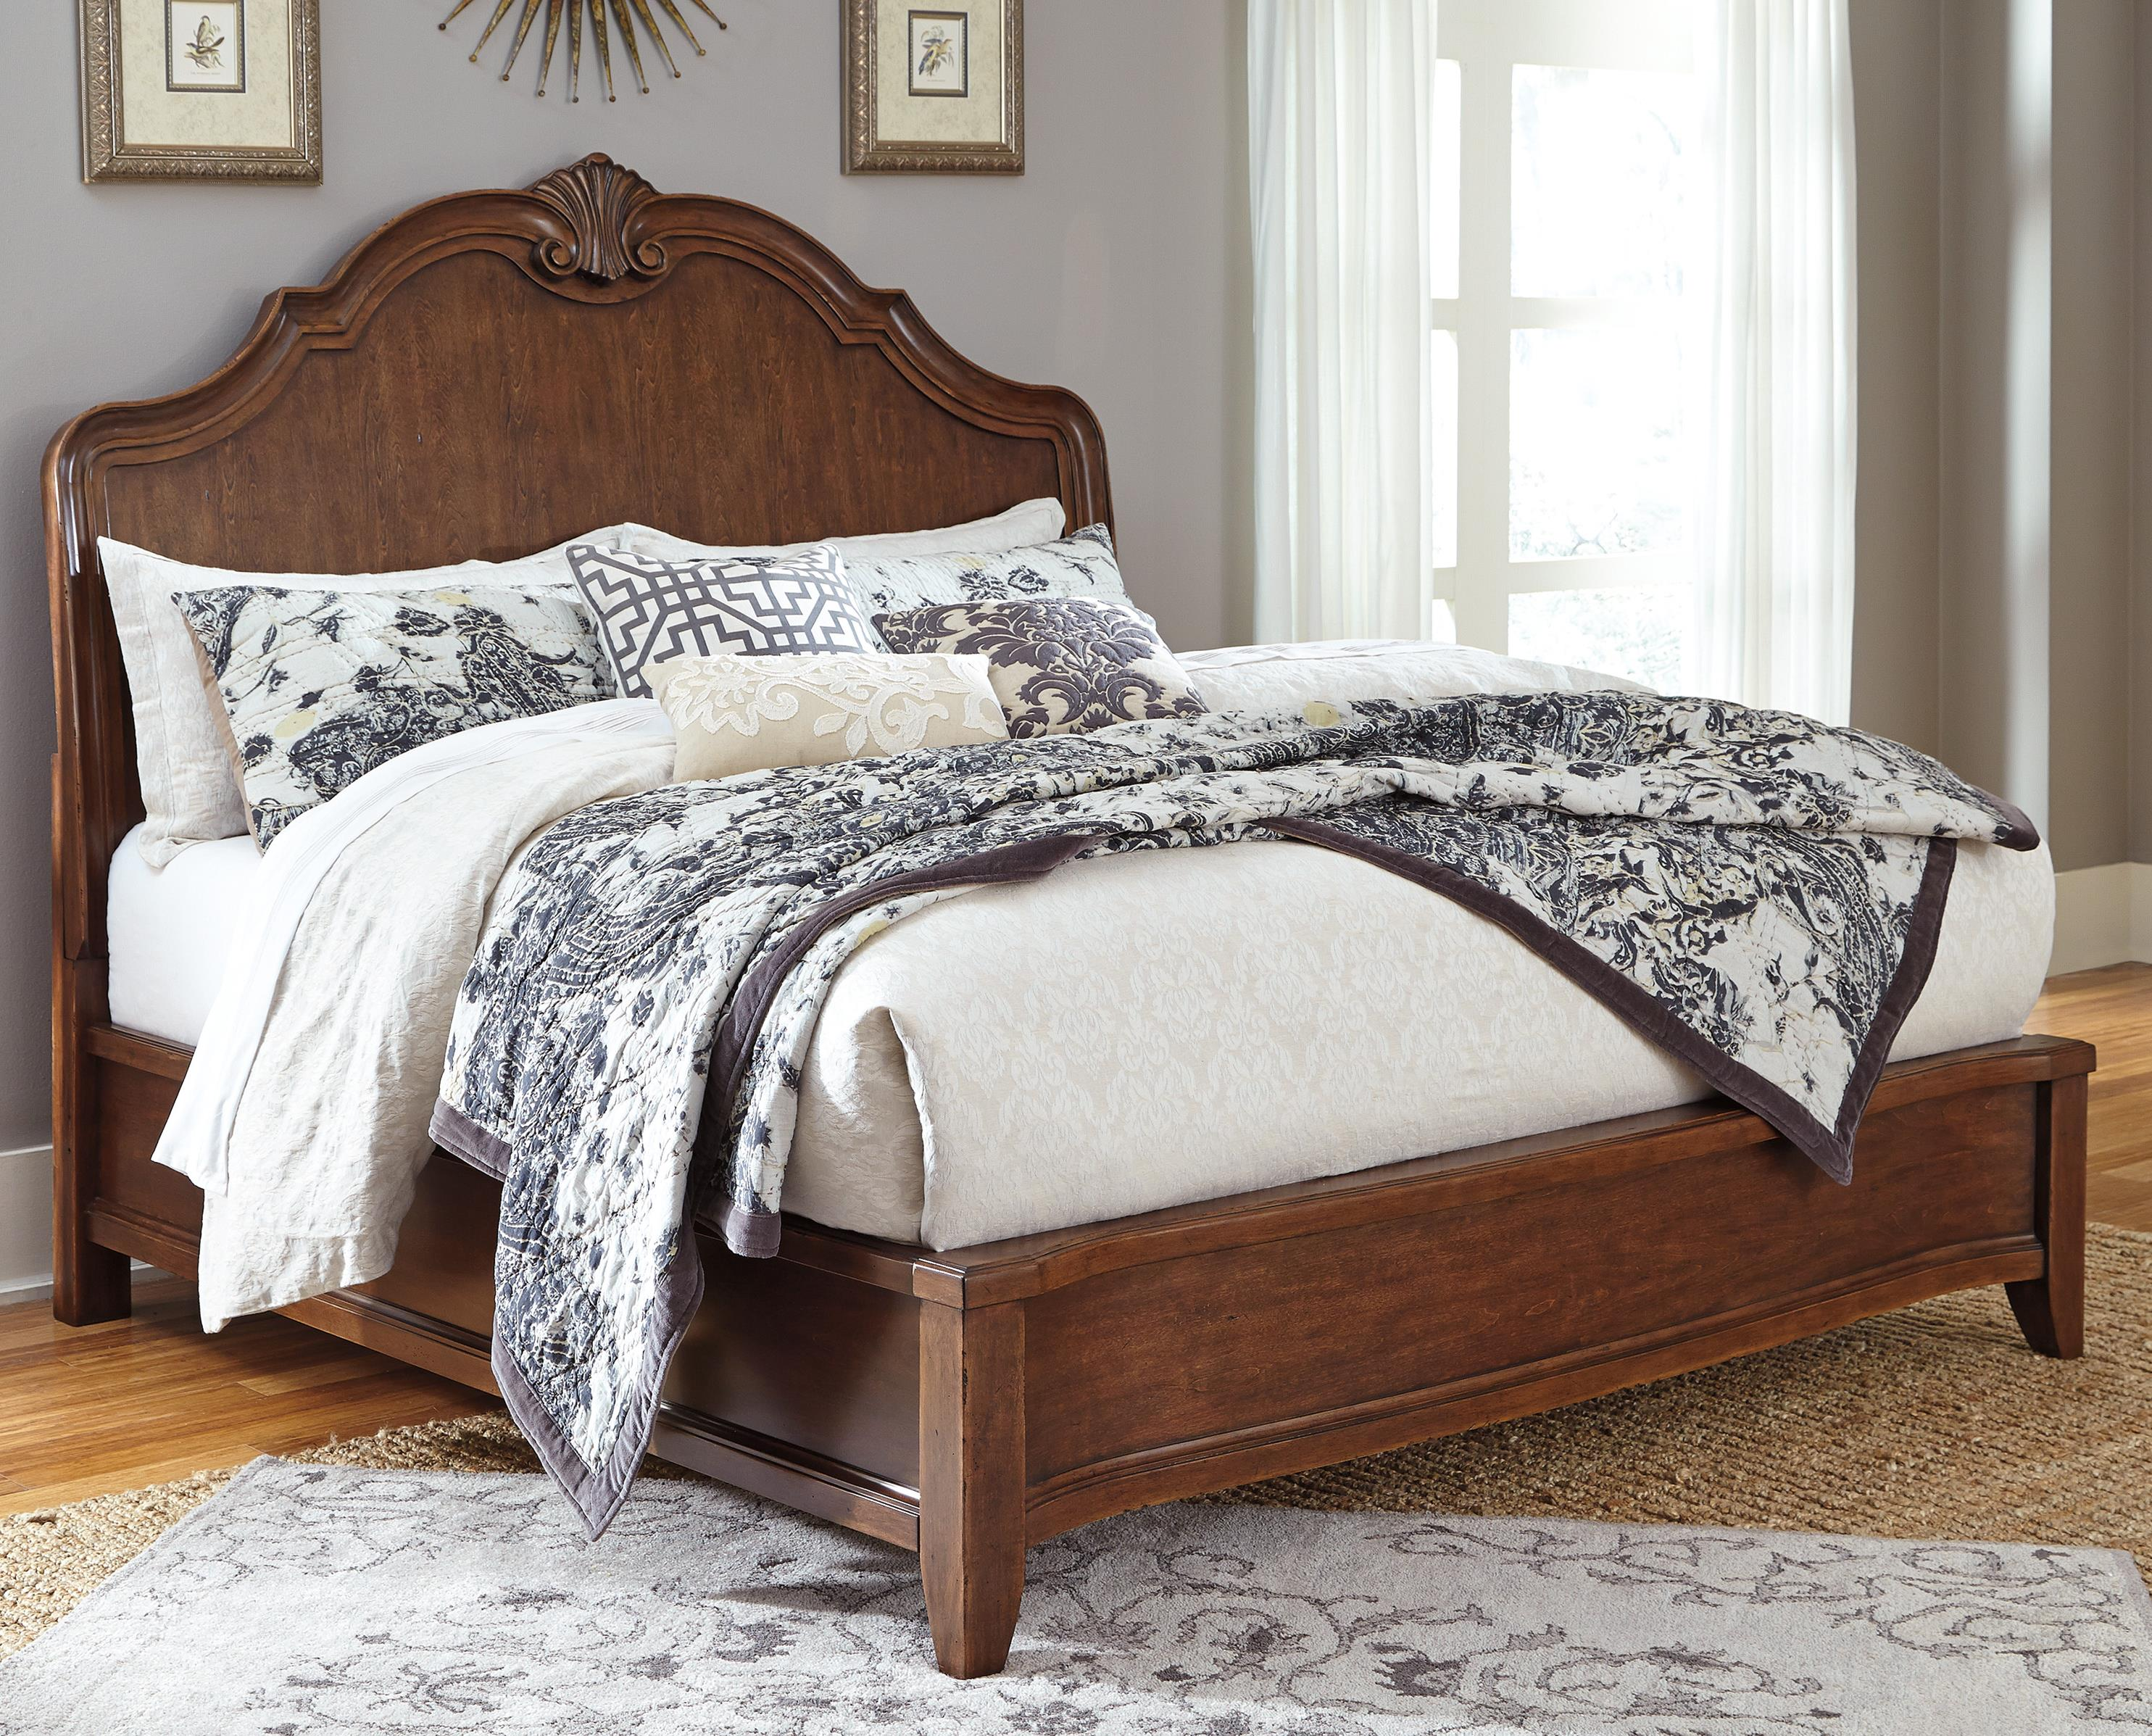 Signature Design by Ashley Balinder California King Sleigh Bed - Item Number: B708-58+56+94